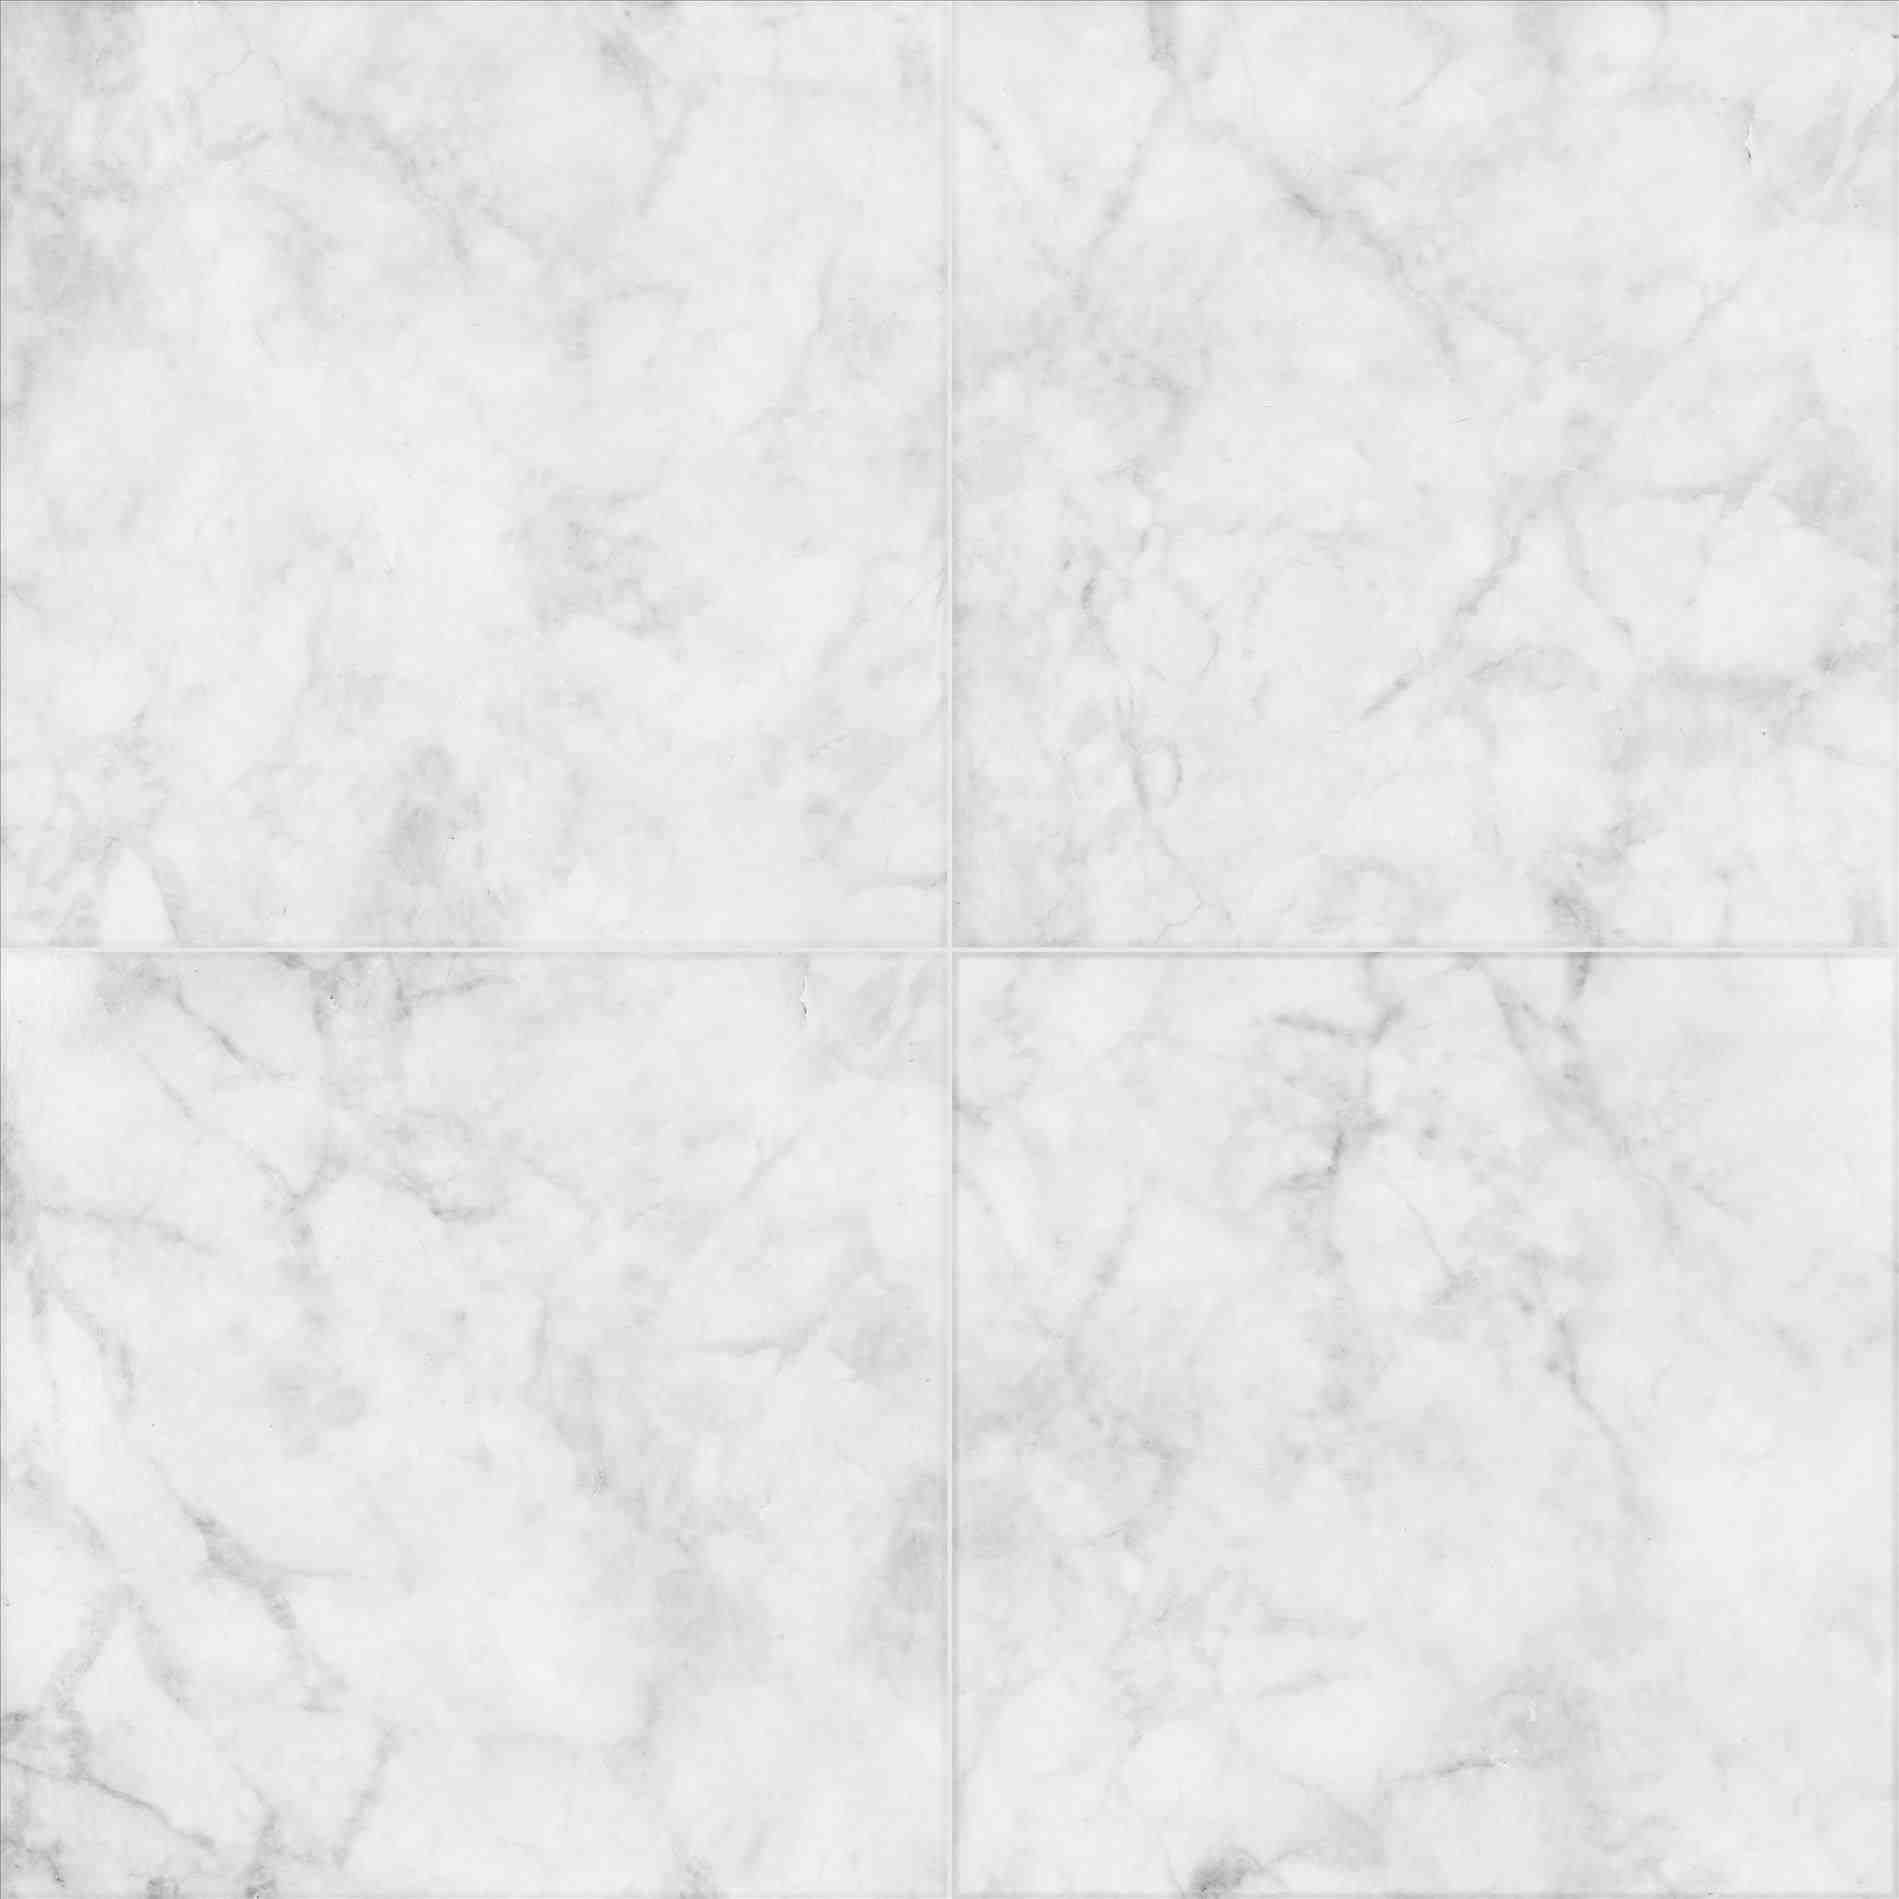 This bathroom floor tiles texture seamless - with swirl pattern ...